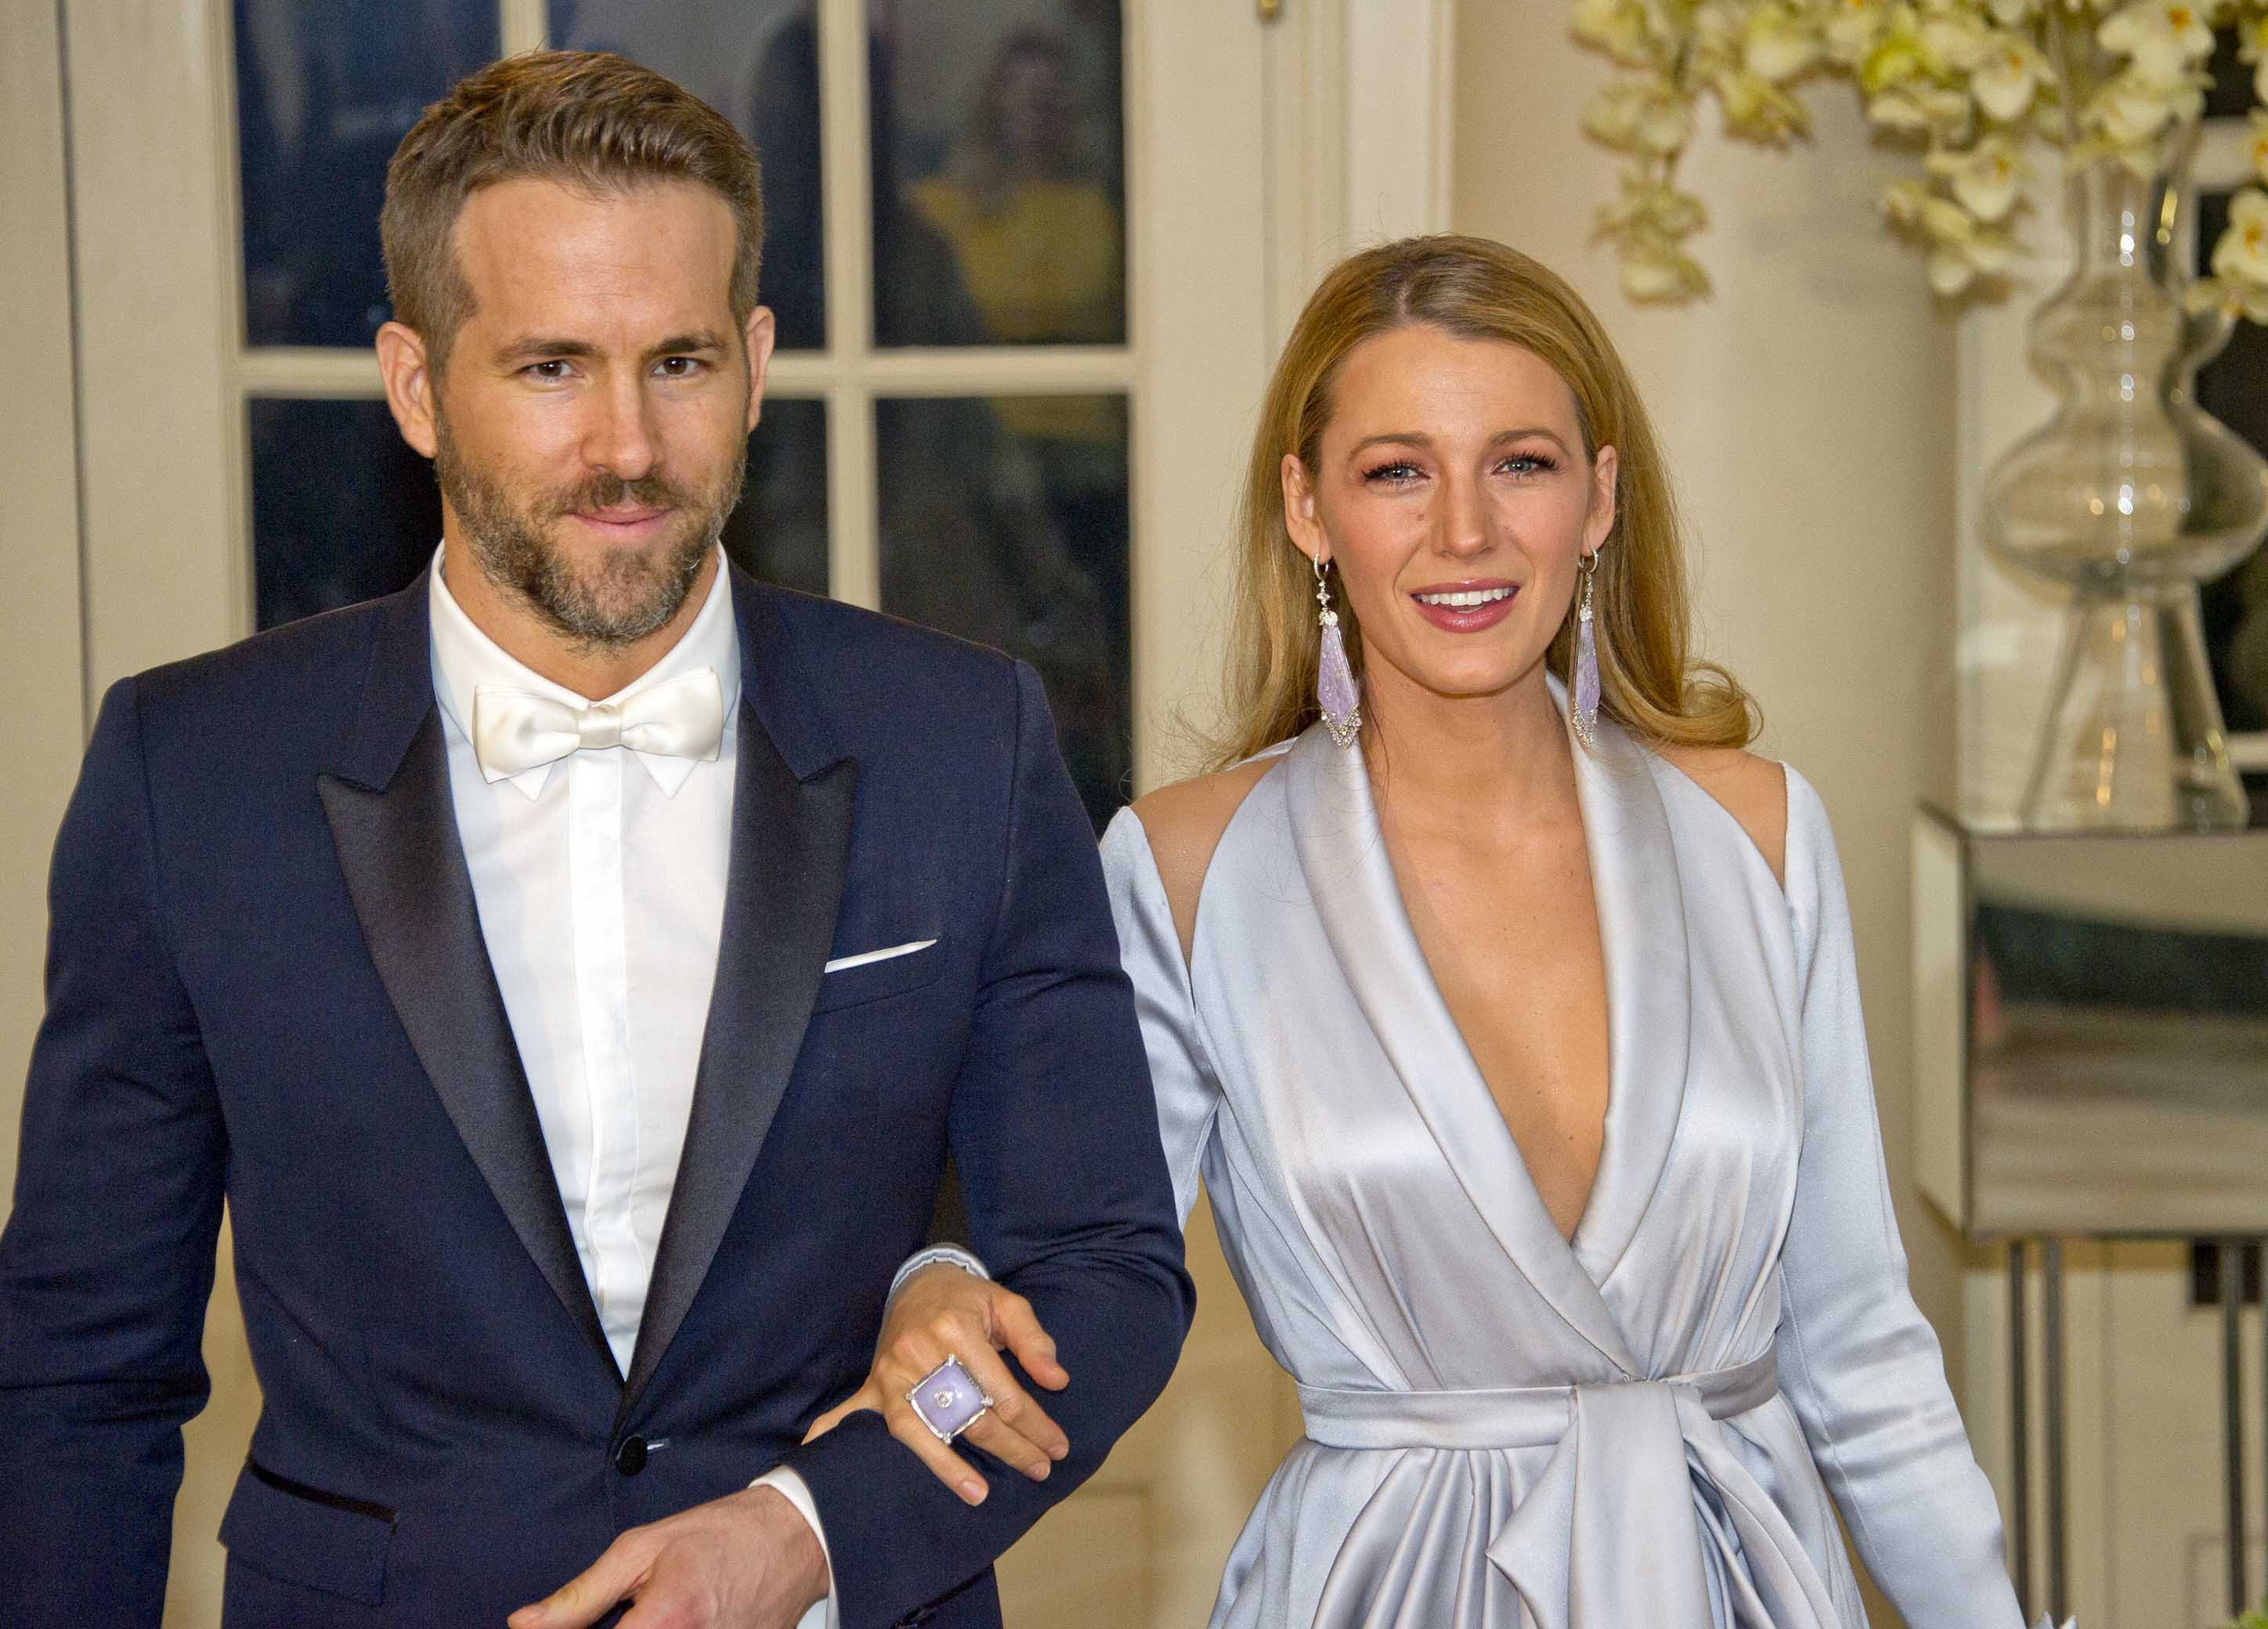 Ryan Reynolds And Blake Lively Make Show-Stopping Appearance At White House State Dinner